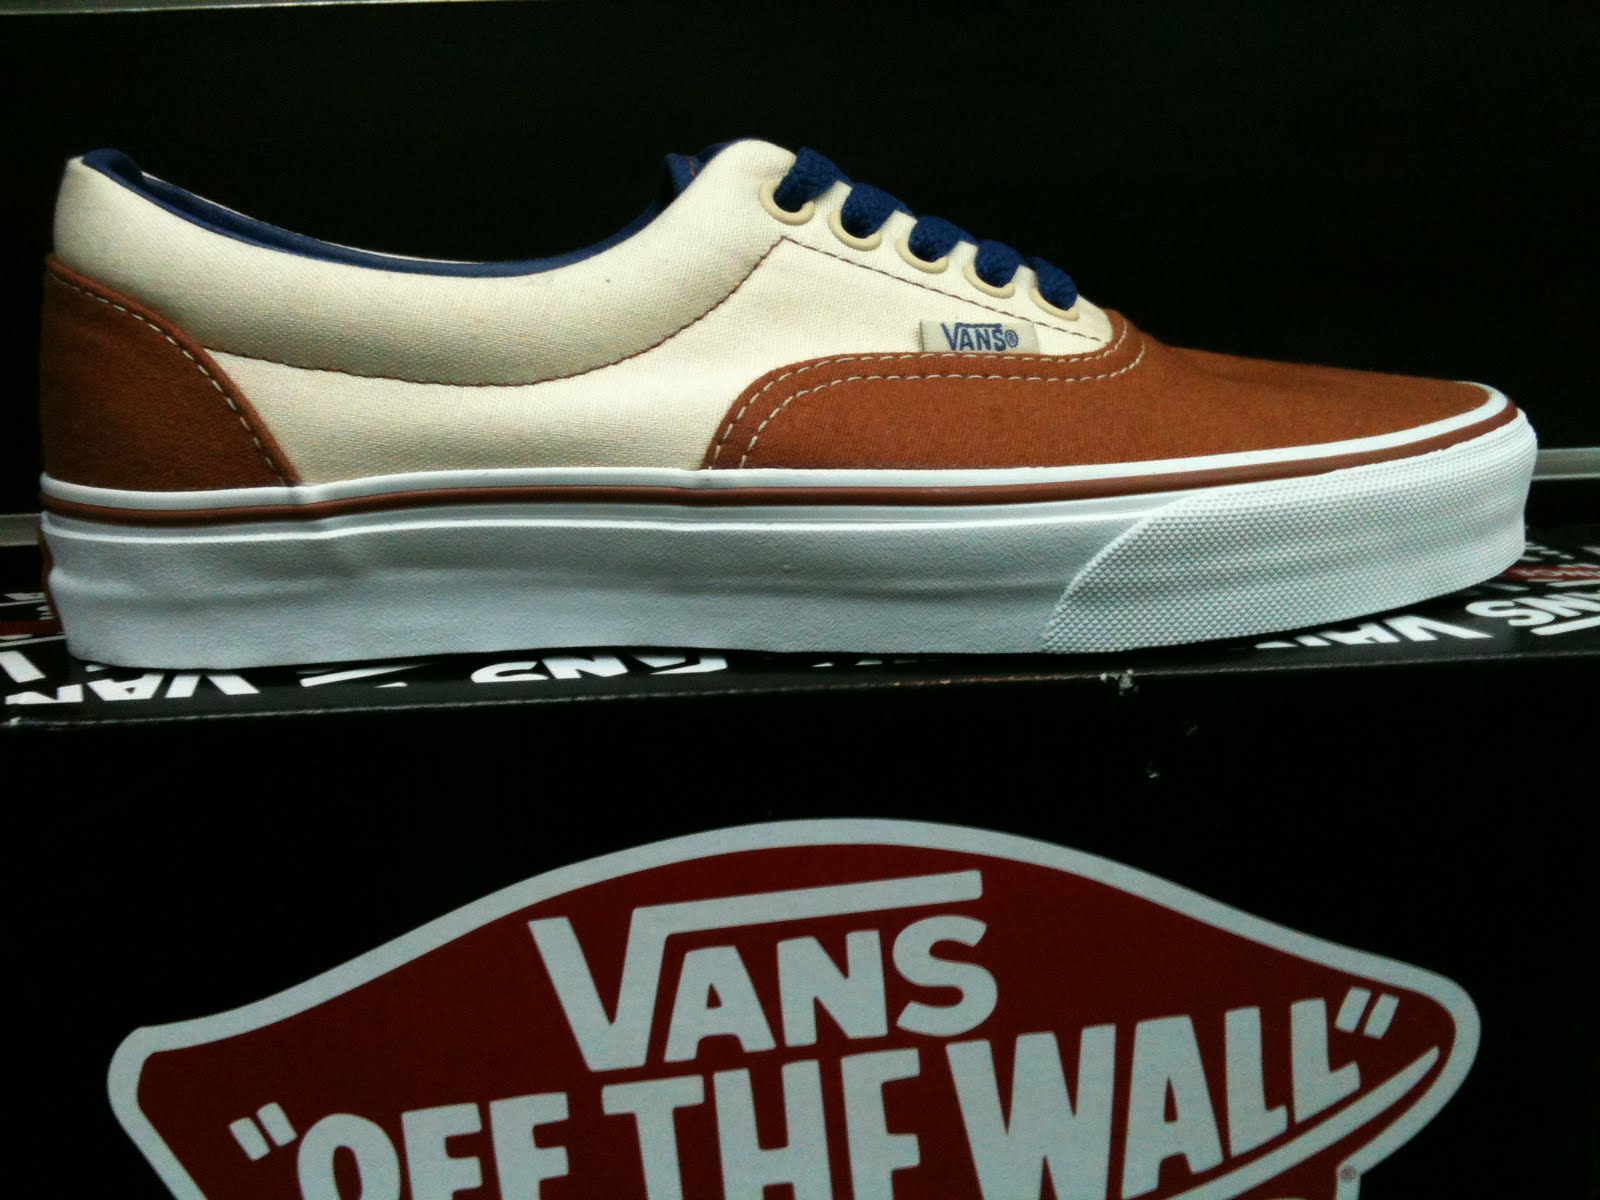 835d7740b7 The Vans Era is an update of the Authentic and was made legendary by Tony  Alva and the Dogtown crew. The Era became skateboarding s first shoe way  back in ...